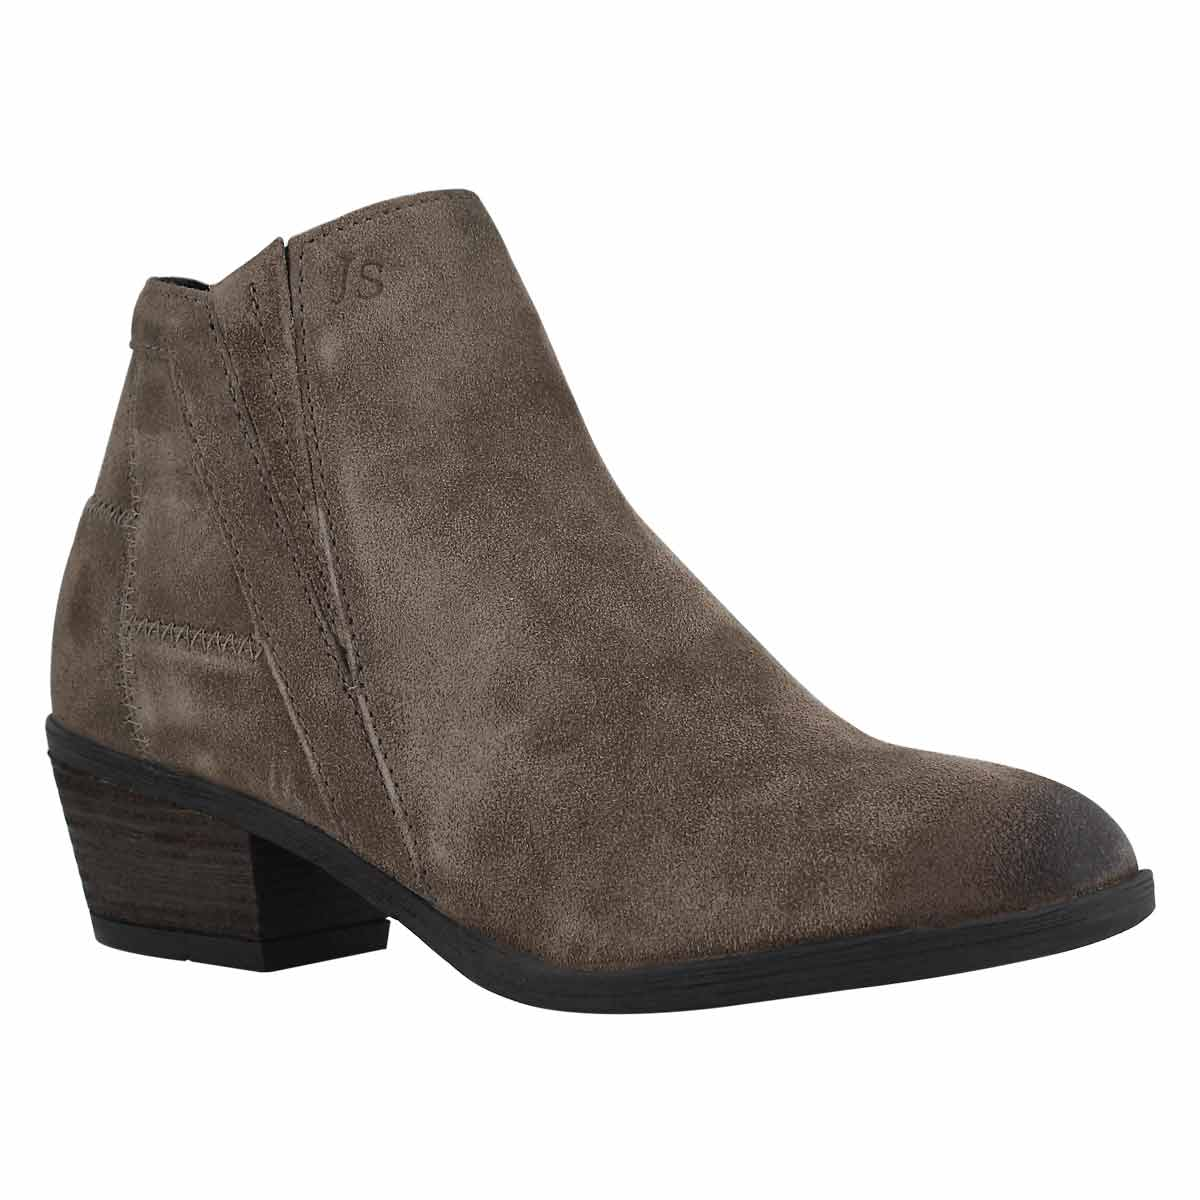 Lds Daphne 09 taupe slip on boot